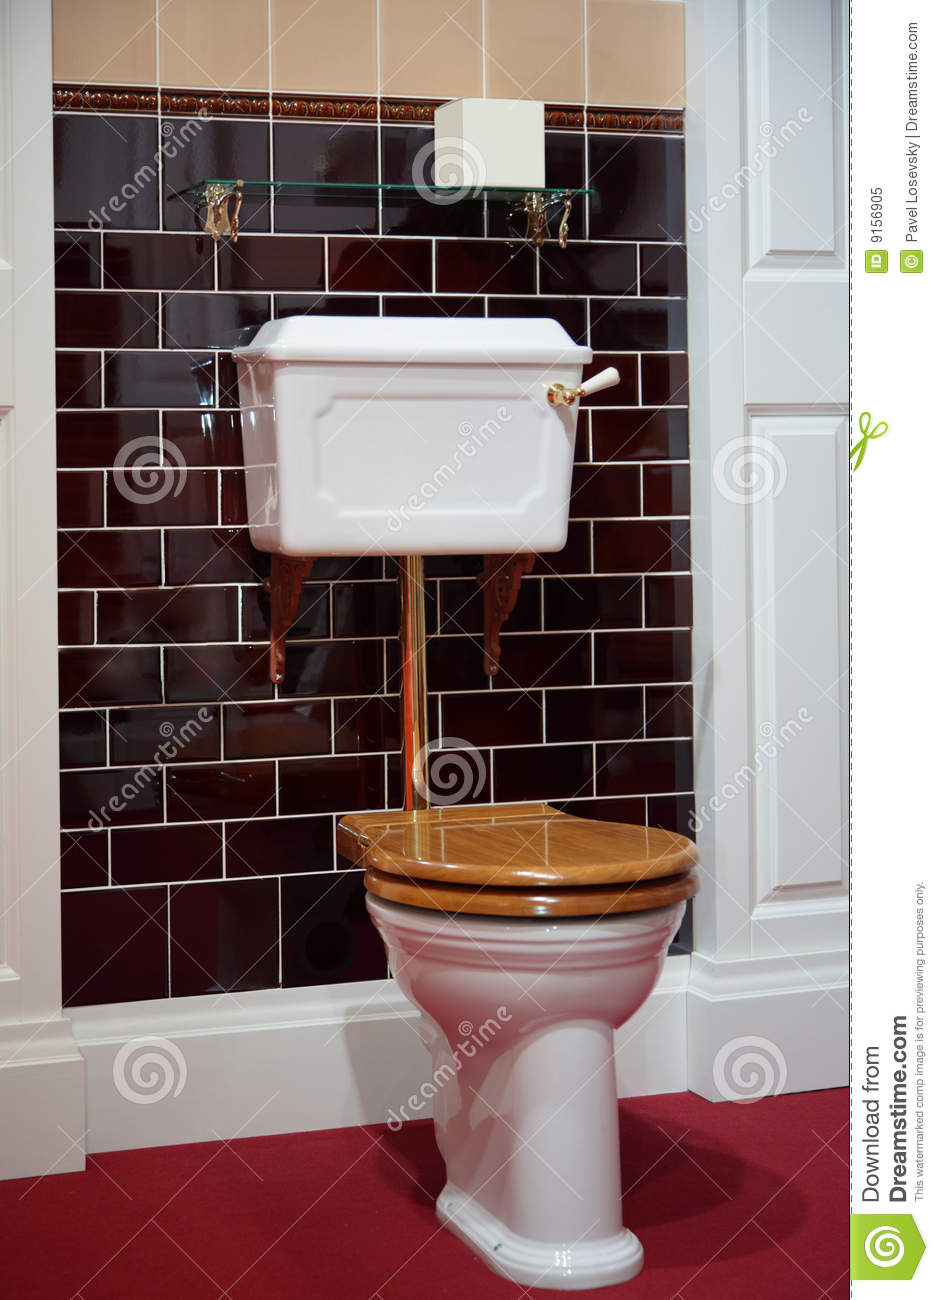 Toilet in old fashioned style stock image image of for Washroom style